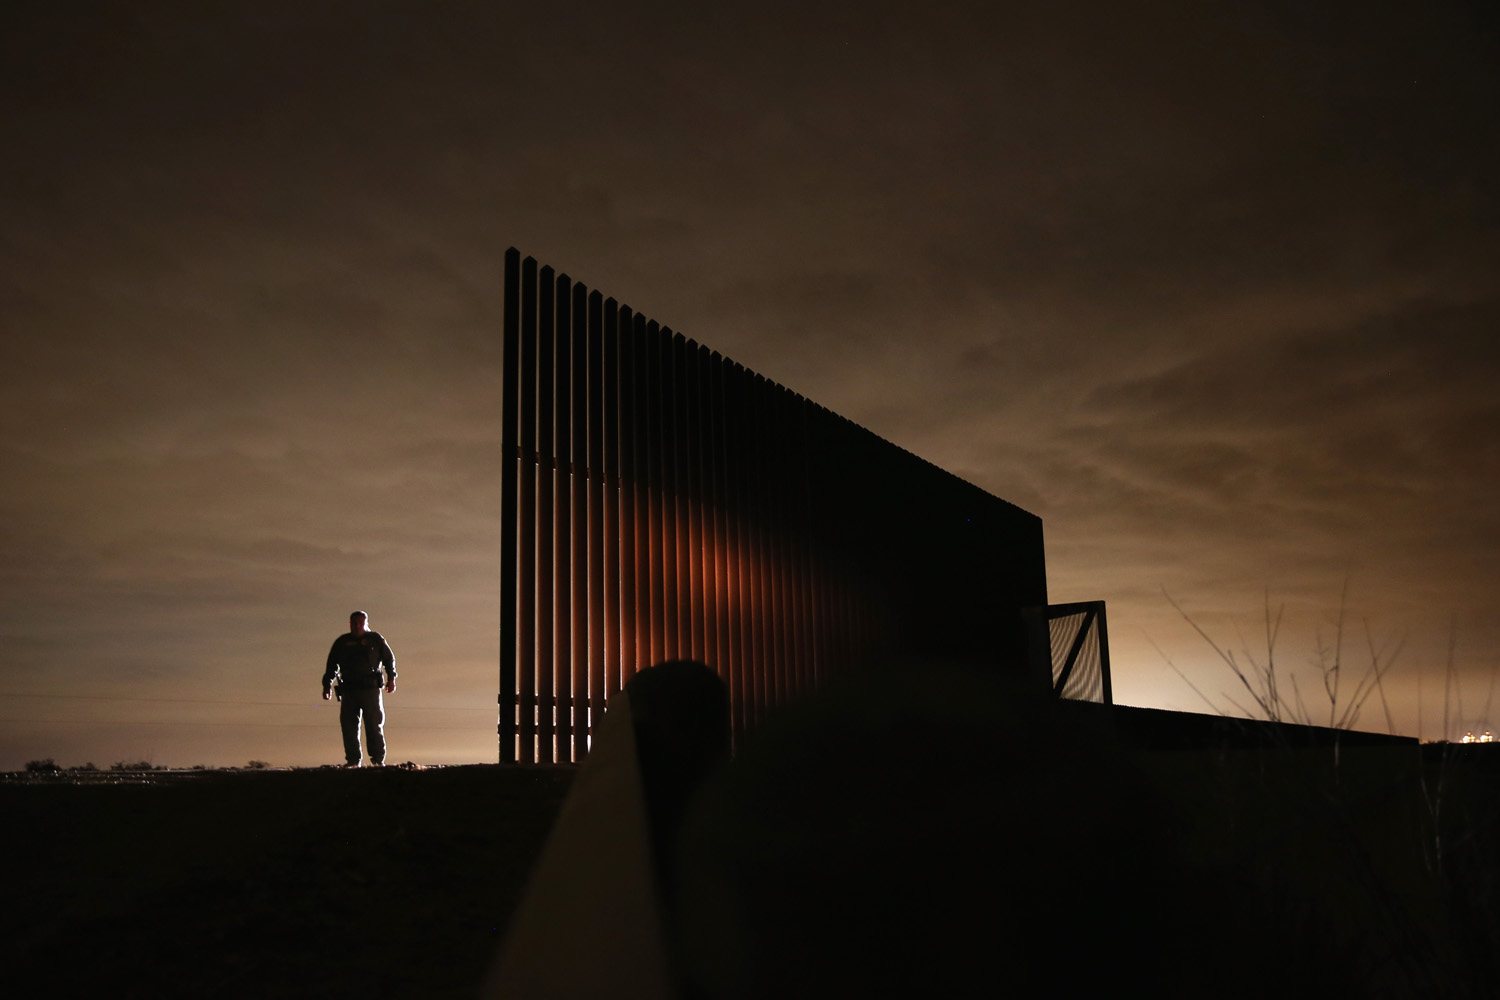 April 10, 2013. U.S. Border Patrol agent Sal De Leon stands near a section of the U.S.- Mexico border fence while stopping on patrol in La Joya, Texas.